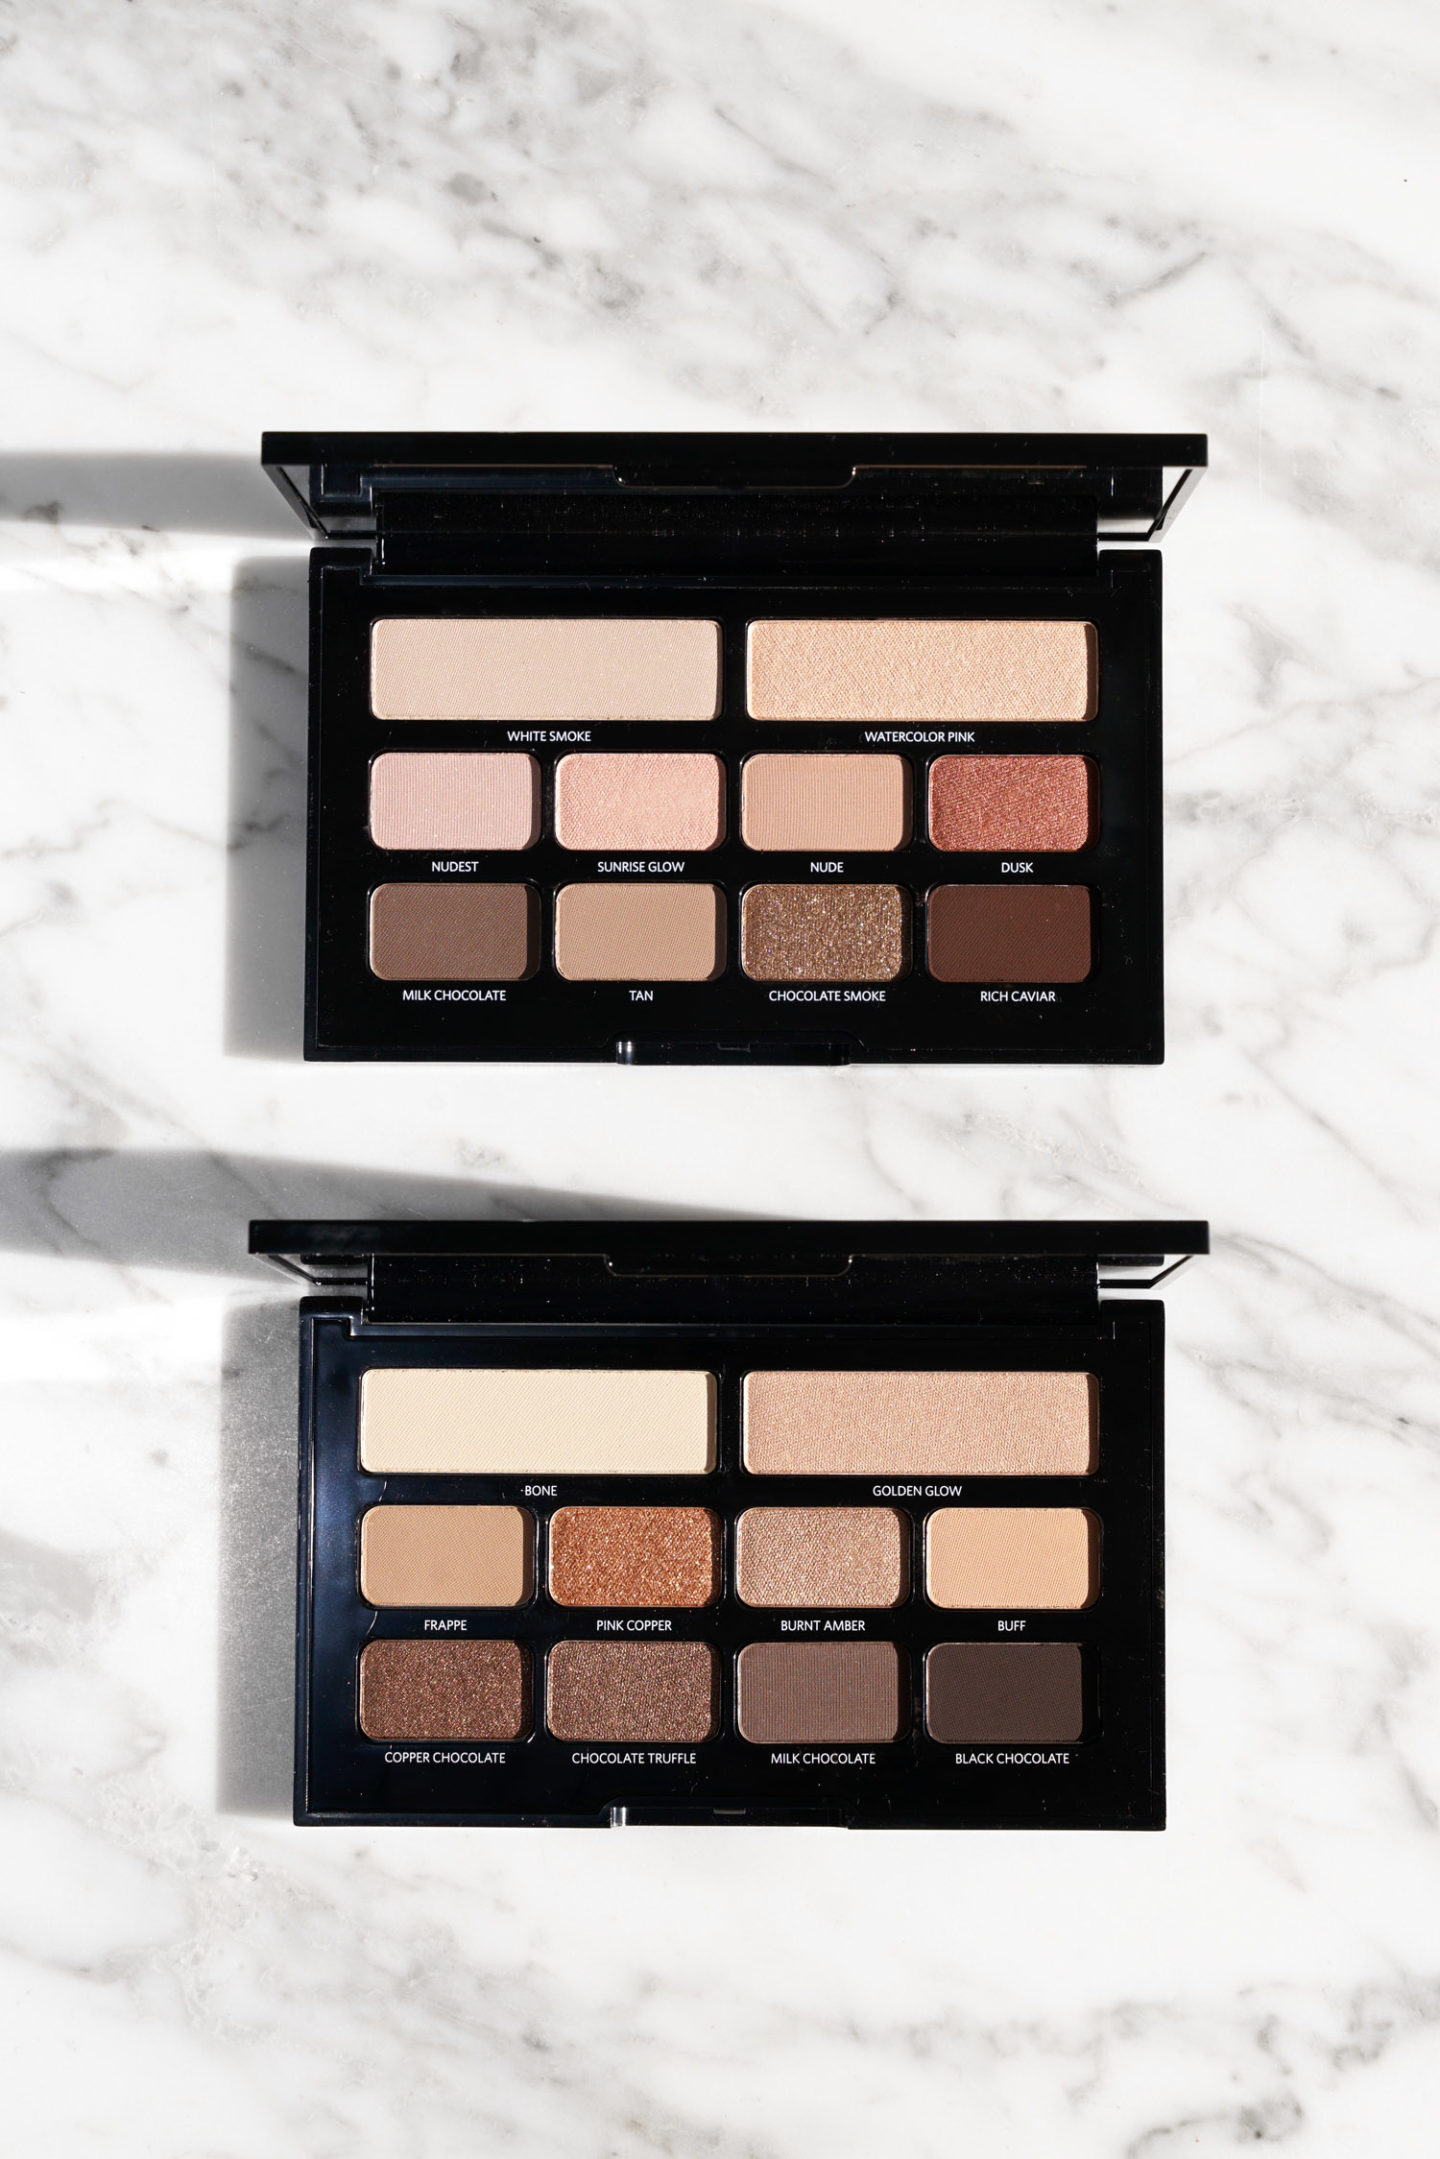 Bobbi Brown Nude on Nude Eyeshadow Palette Review Rosy and Bronzed